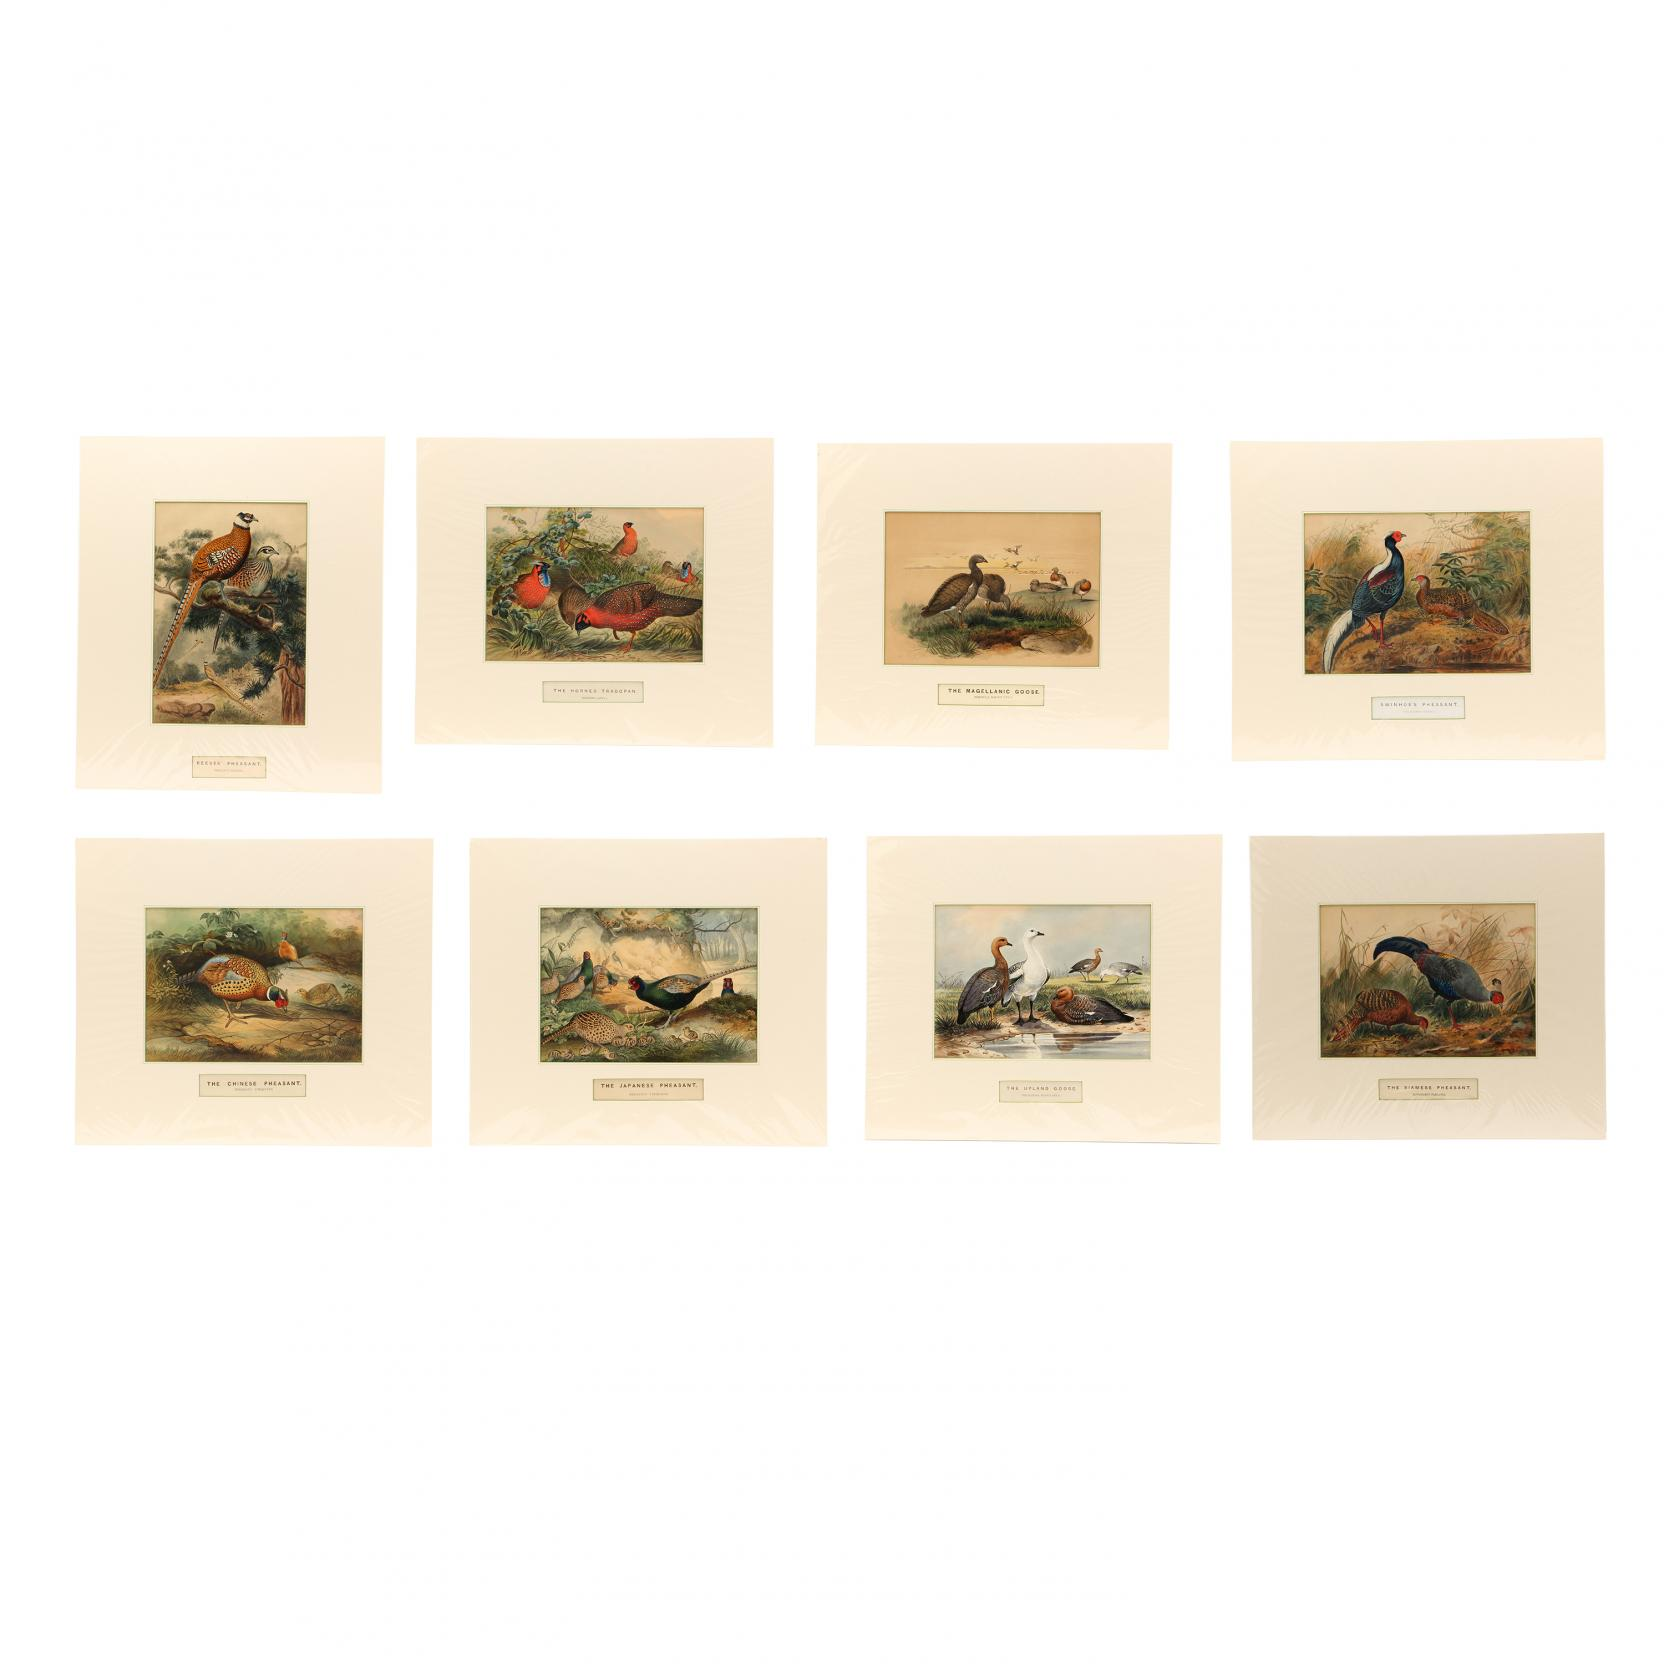 joseph-wolf-german-1820-1899-group-of-8-prints-from-i-zoological-sketches-i